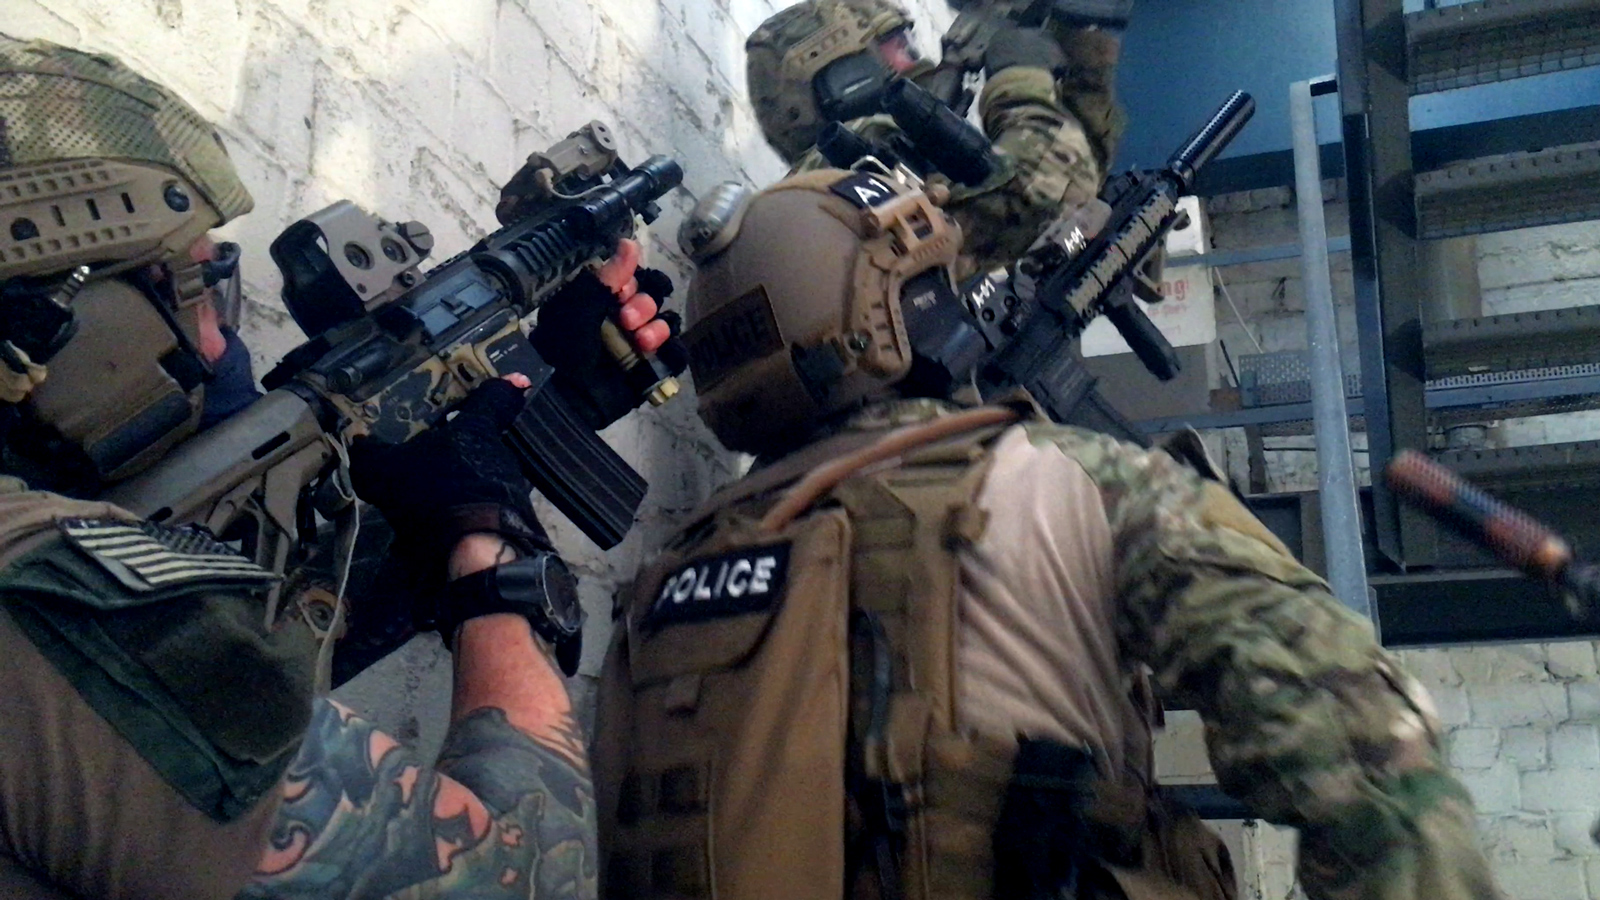 MG Action, Martin Goeres, Special Forces, FBI HRT, Room Clearing